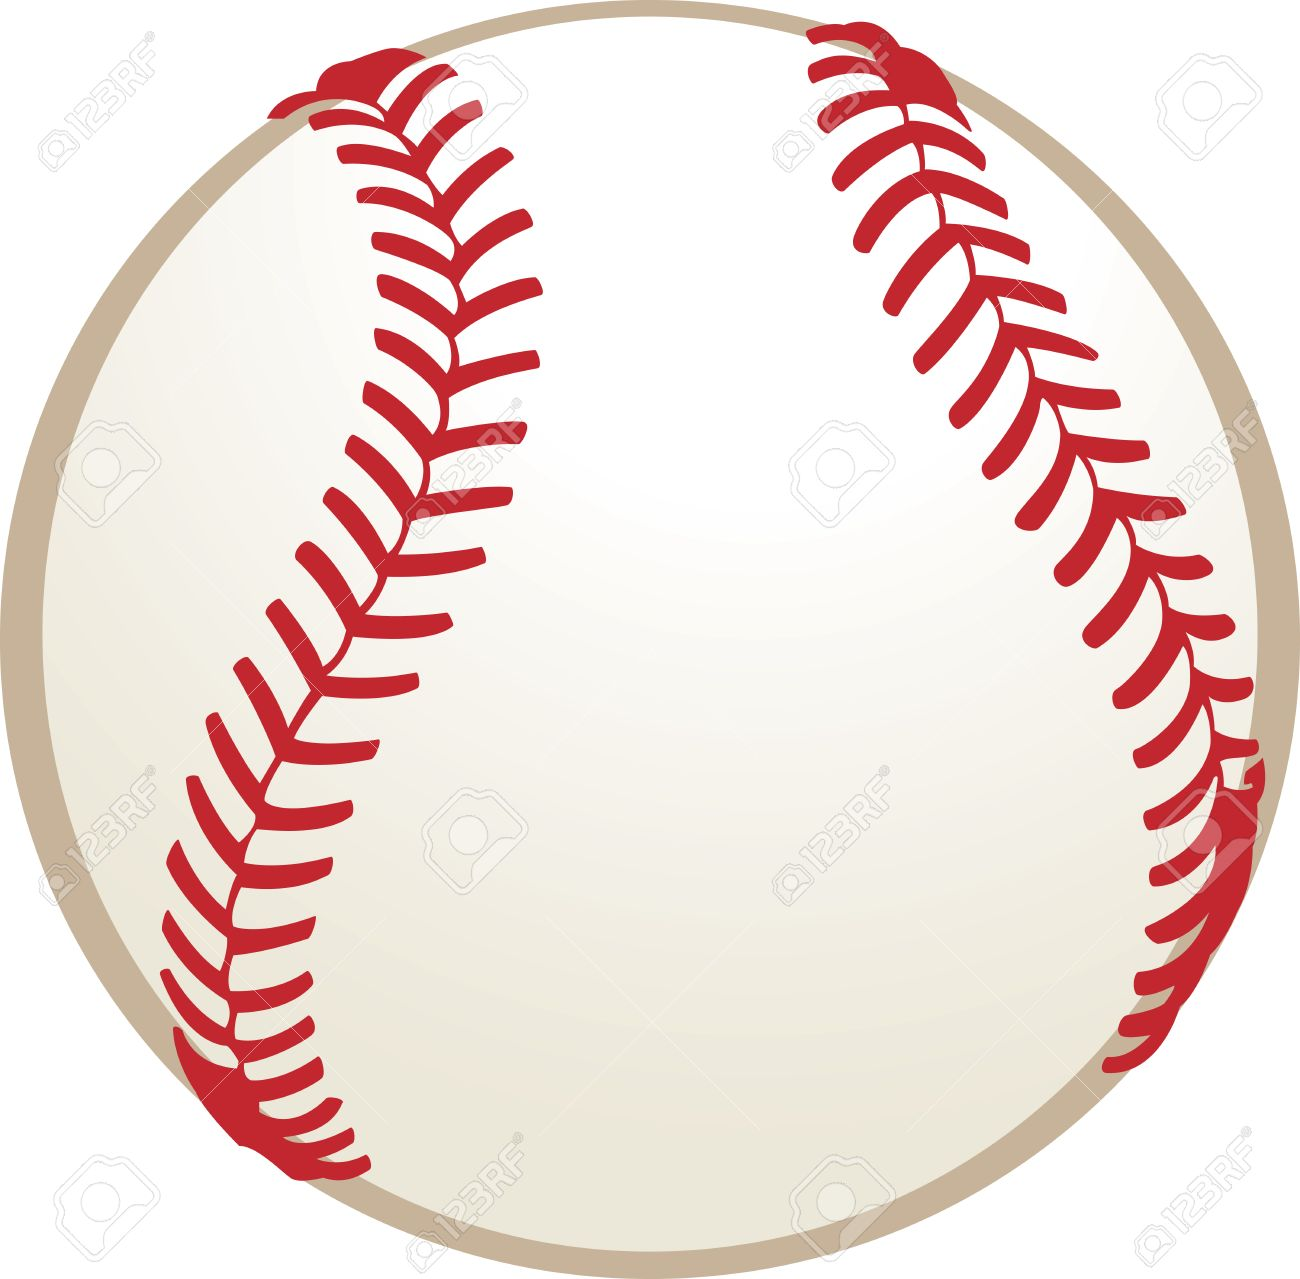 Baseball Illustration Royalty Free Cliparts, Vectors, And Stock ...